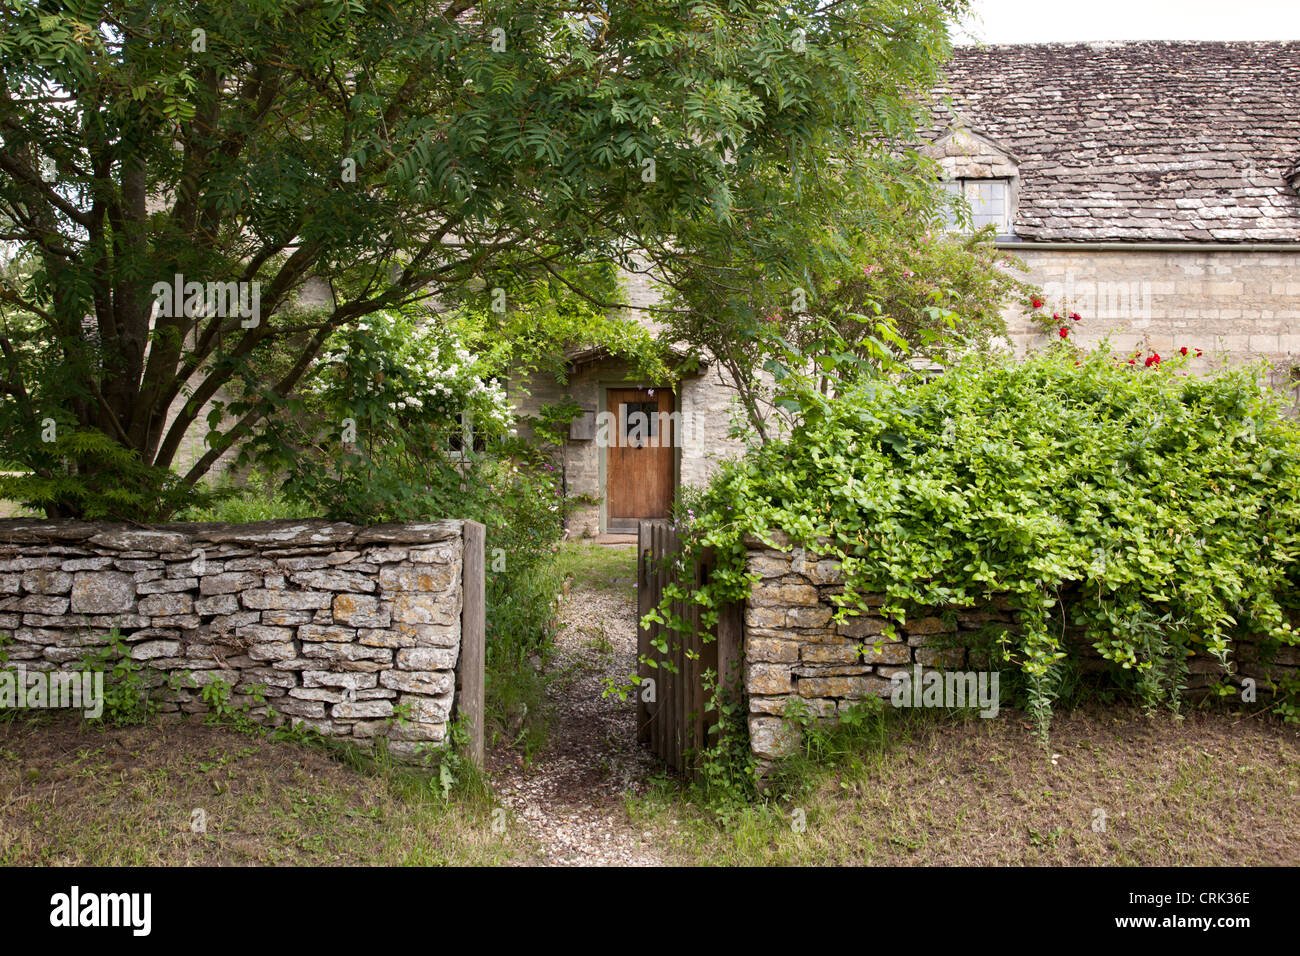 Kelmscott, West Oxfordshire, England - Stock Image